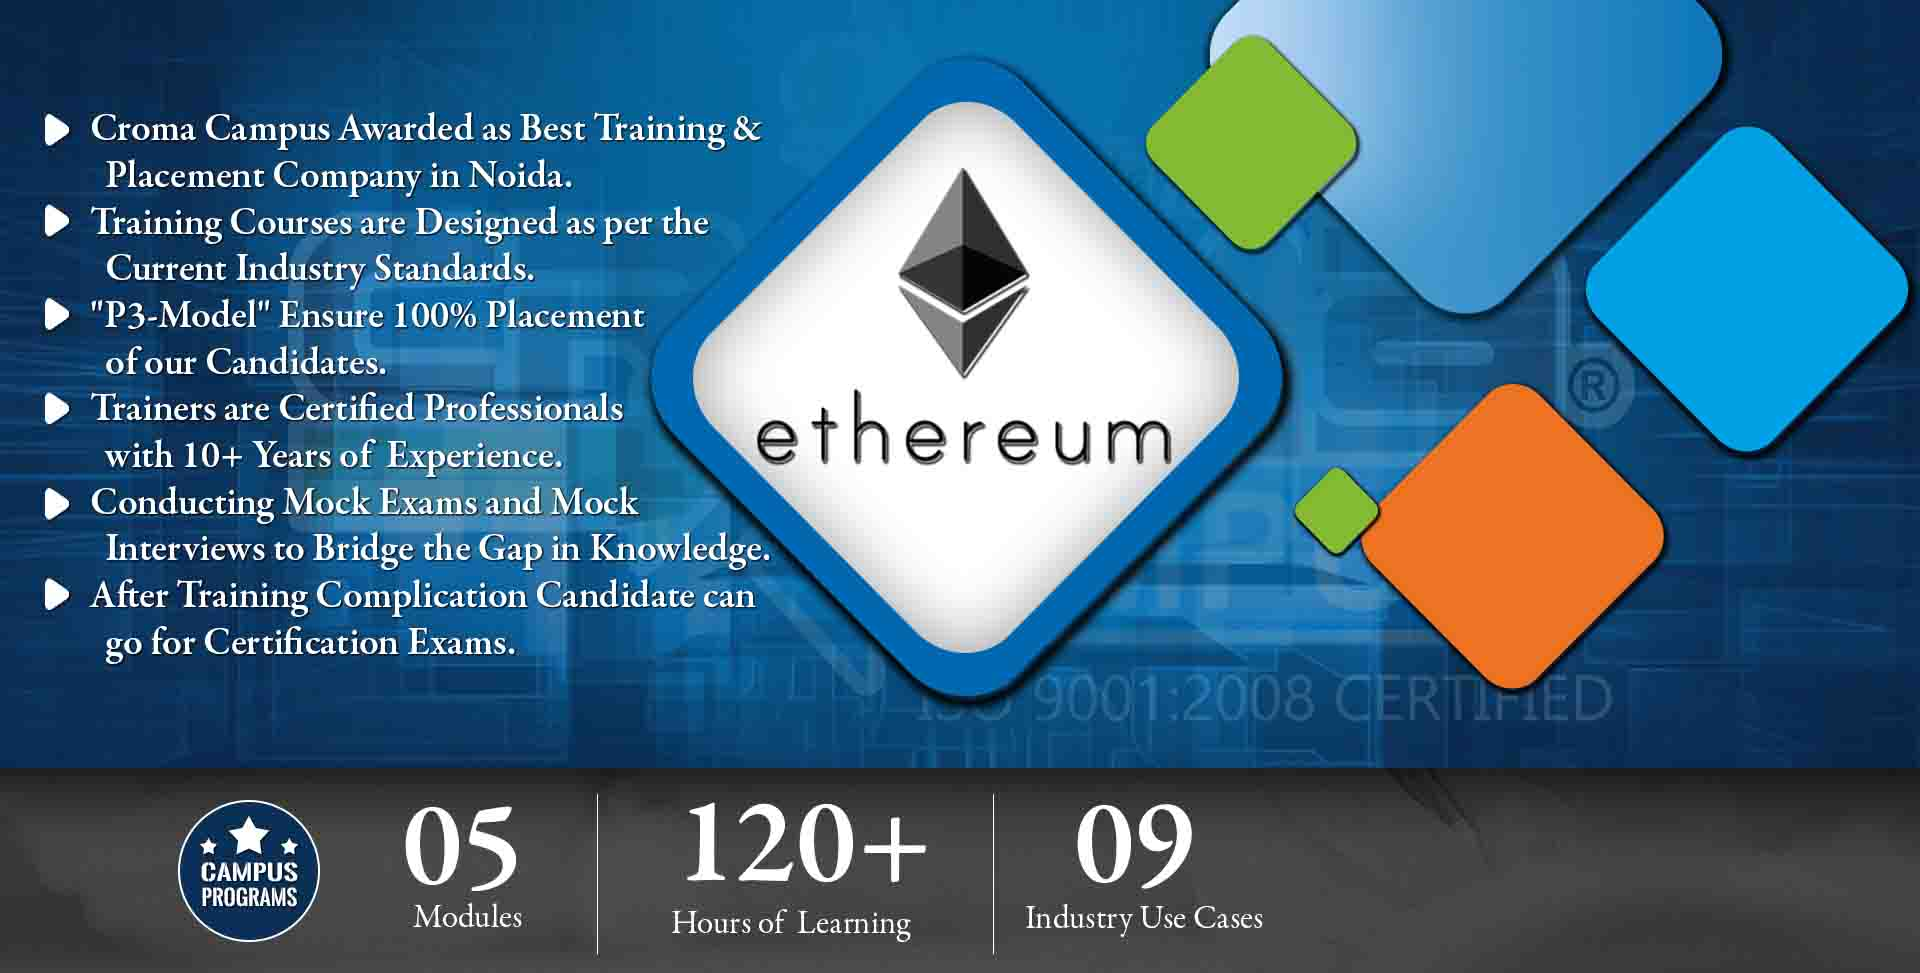 ETHEREUM Training in Gurgaon- Croma Campus